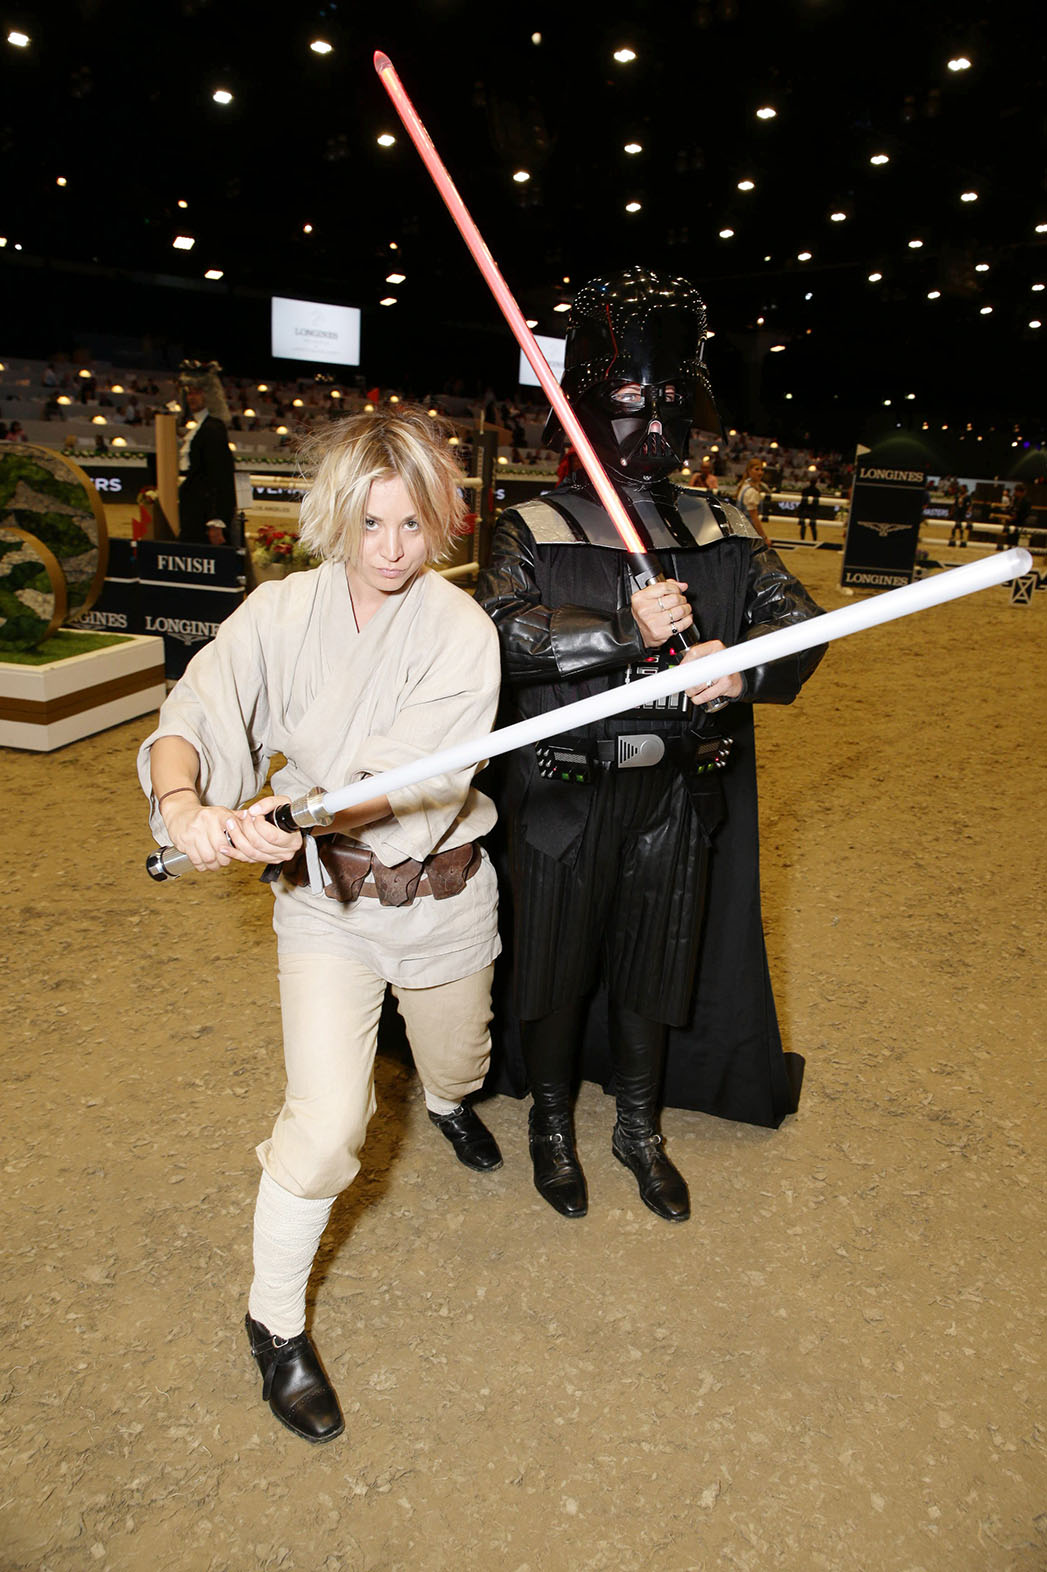 Kaley Cuoco Tracey Wade Lightsabers - P 2015